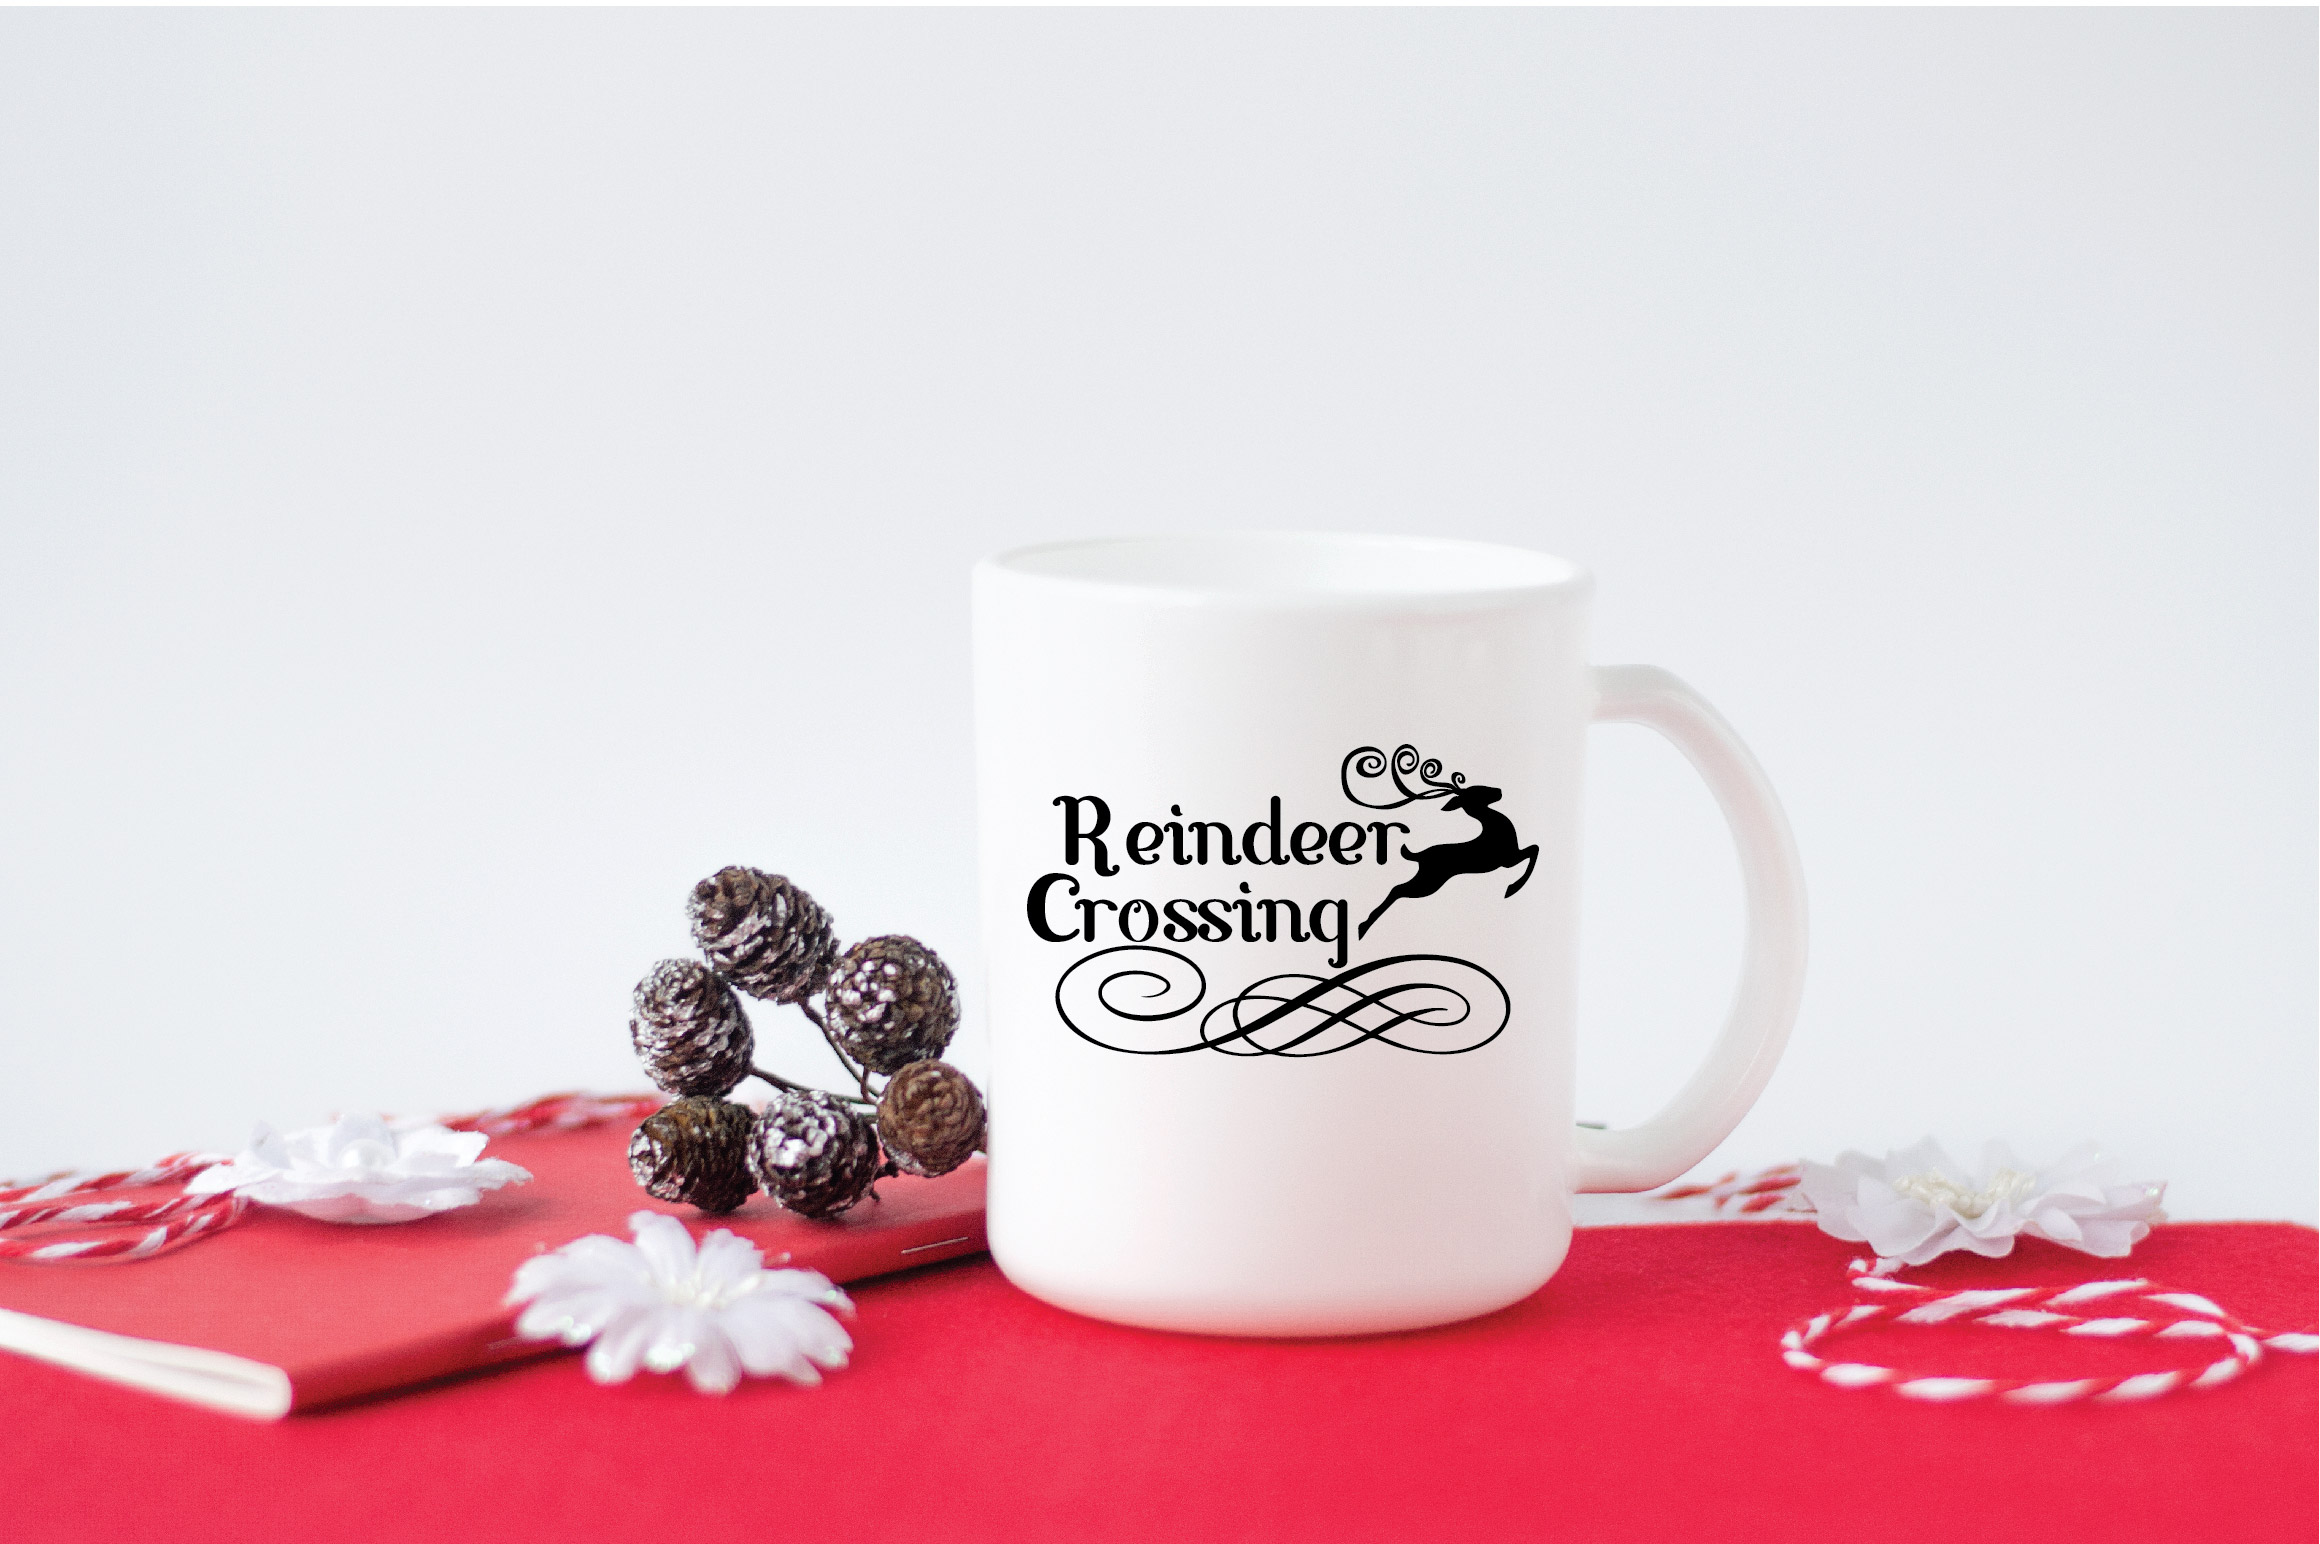 Christmas SVG Cut File - Reindeer Crossing SVG DXF PNG EPS example image 5